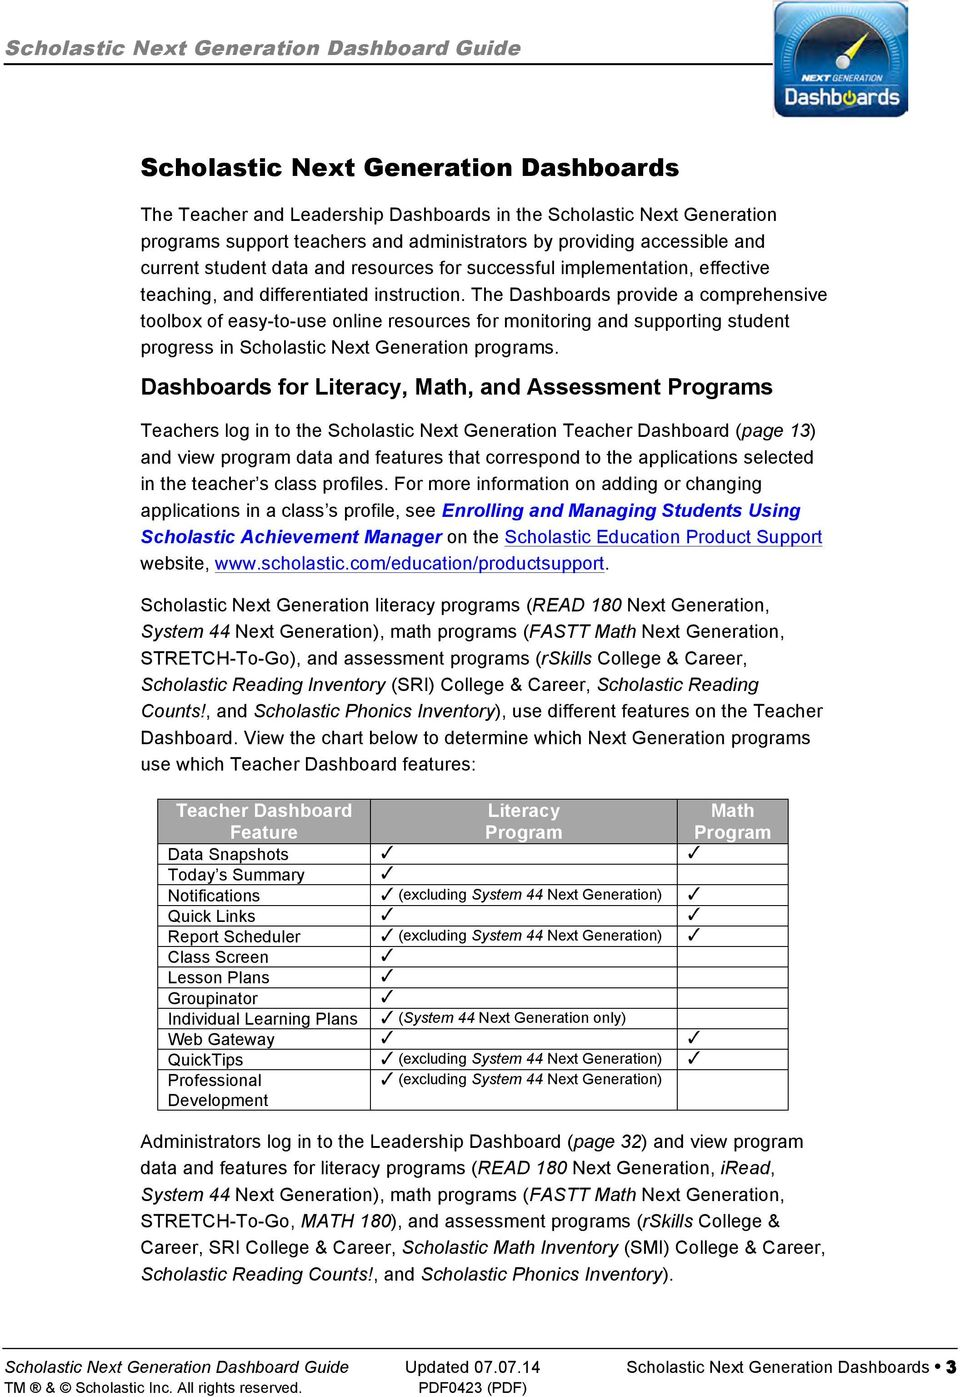 The Dashboards provide a comprehensive toolbox of easy-to-use online resources for monitoring and supporting student progress in Scholastic Next Generation programs.